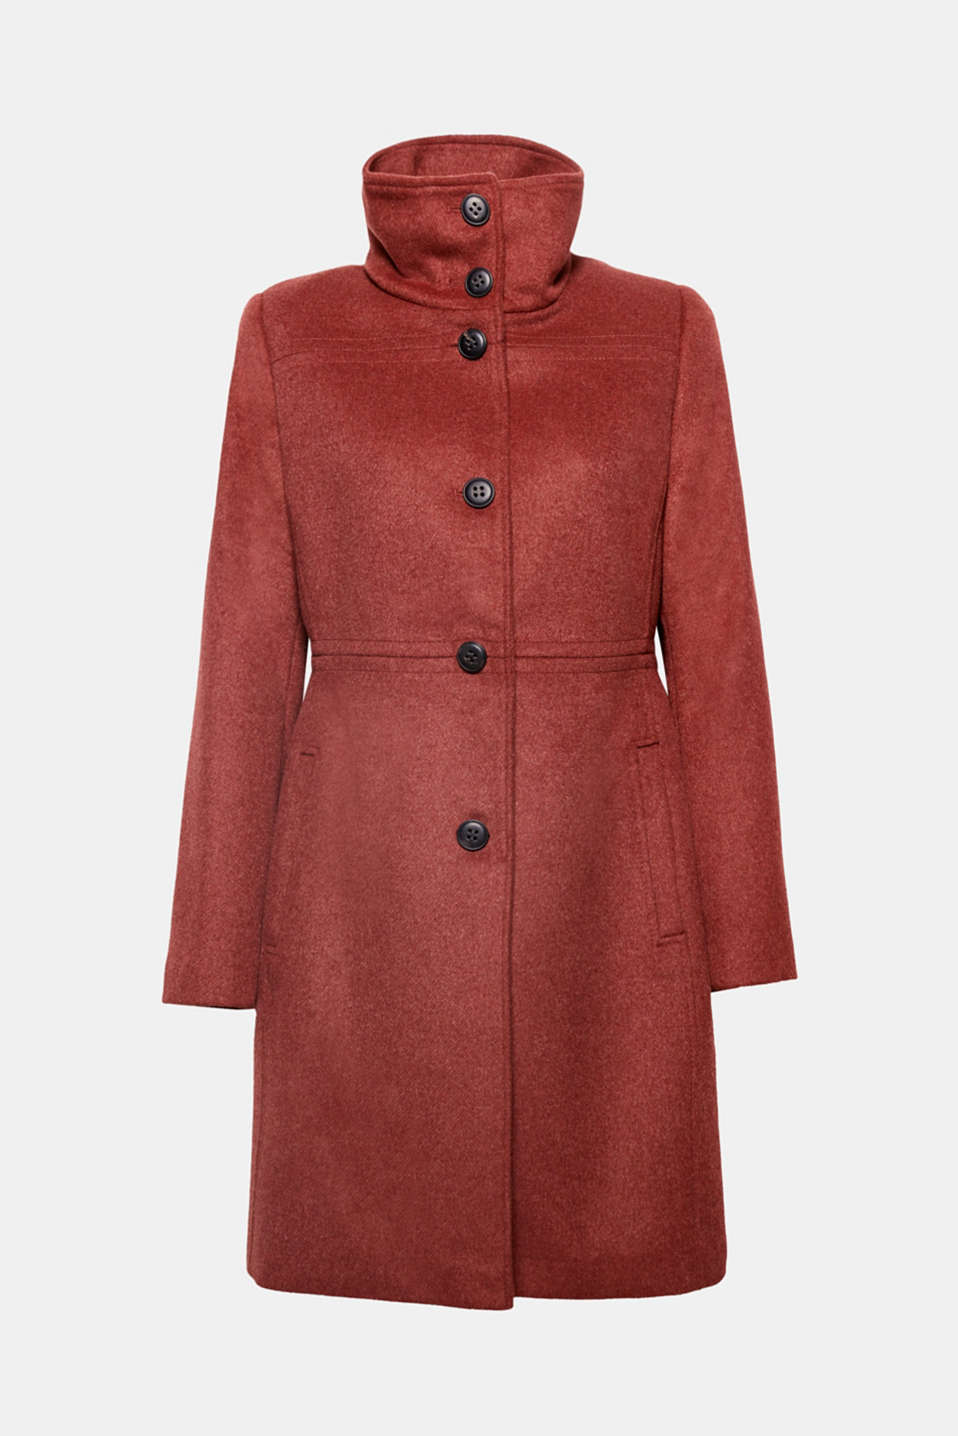 This fitted coat in a high-quality wool blend is a classic, elegant piece with an adjustable collar: depending on your outfit and the weather, you can turn it up or fold it down.